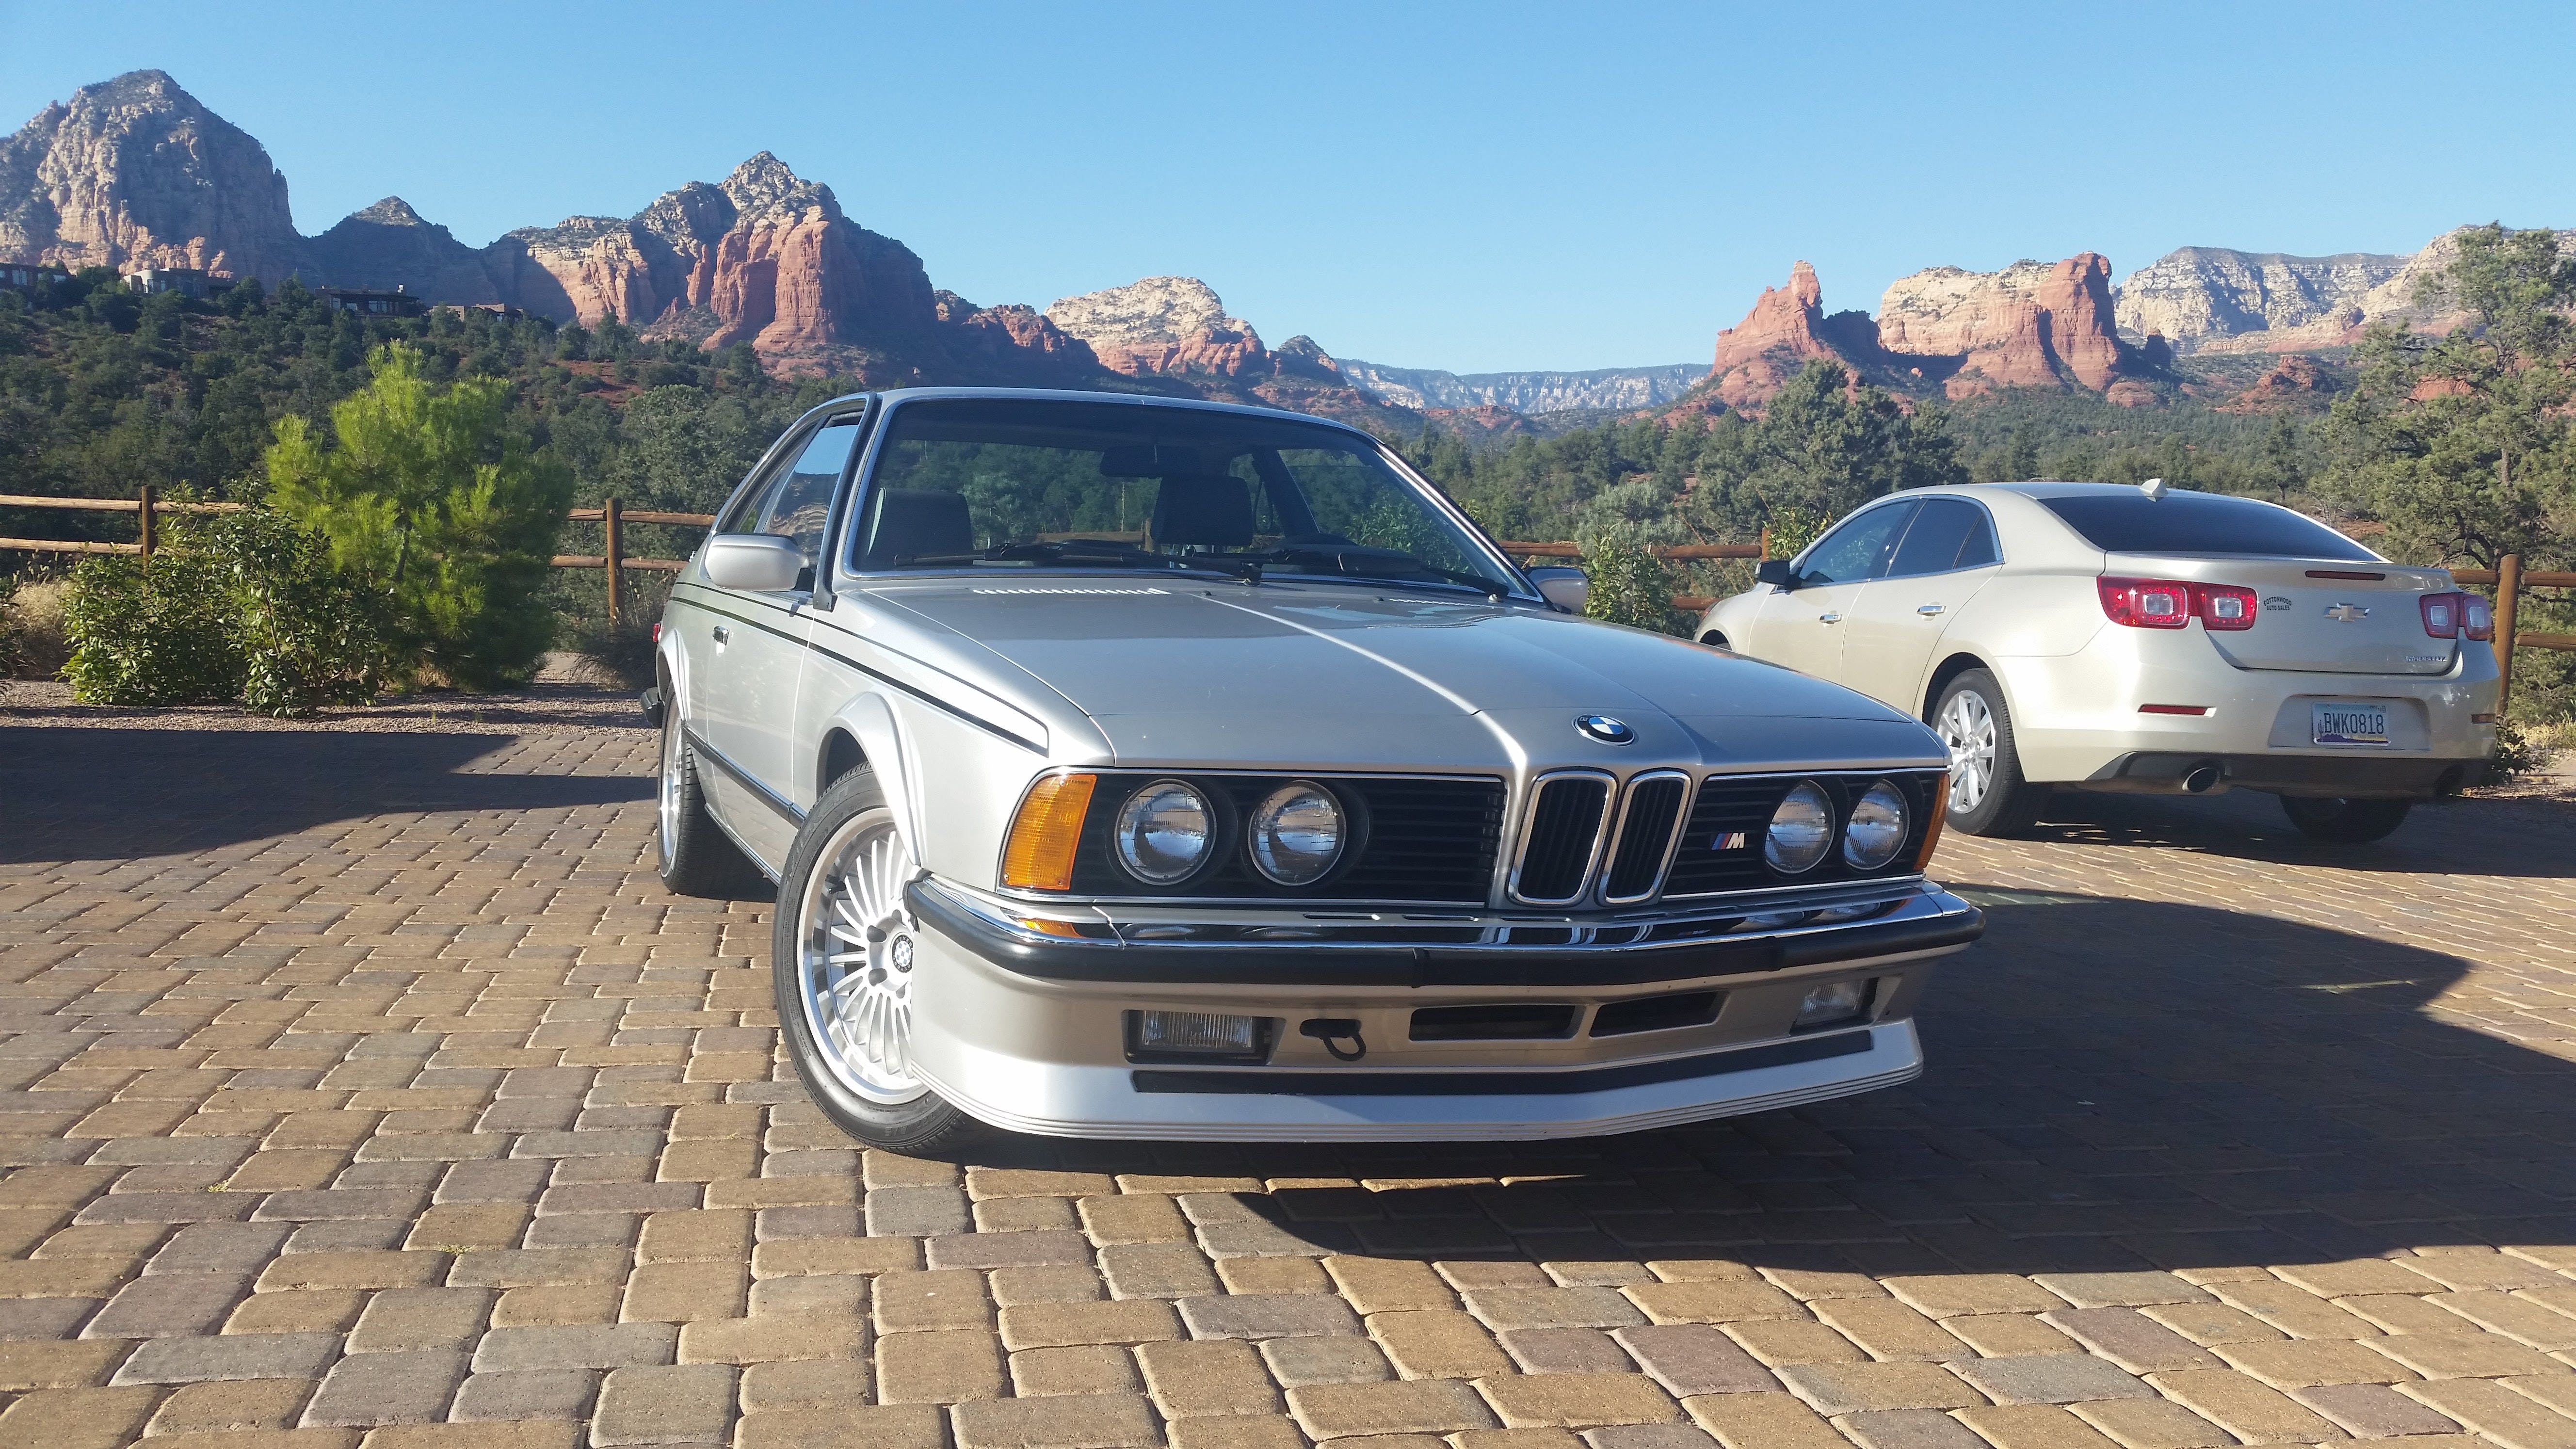 1985 Bmw M 635csi Sedan Sold At Russo And Steele Scottsdale 2018 Classic Com